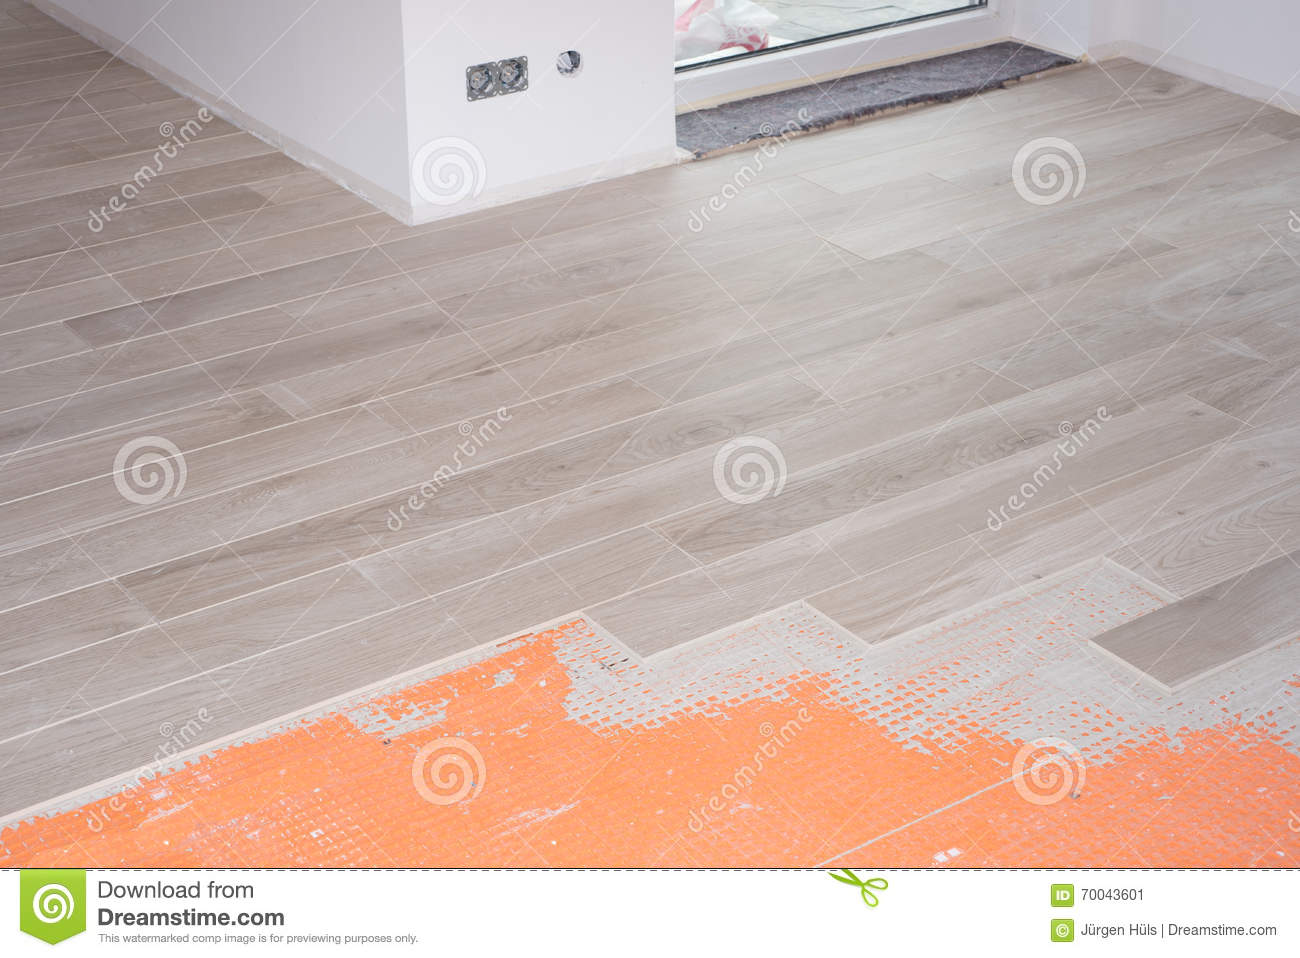 Floor renovation with ceramic tiles in wood design stock image royalty free stock photo download floor renovation with ceramic tiles in wood design dailygadgetfo Images